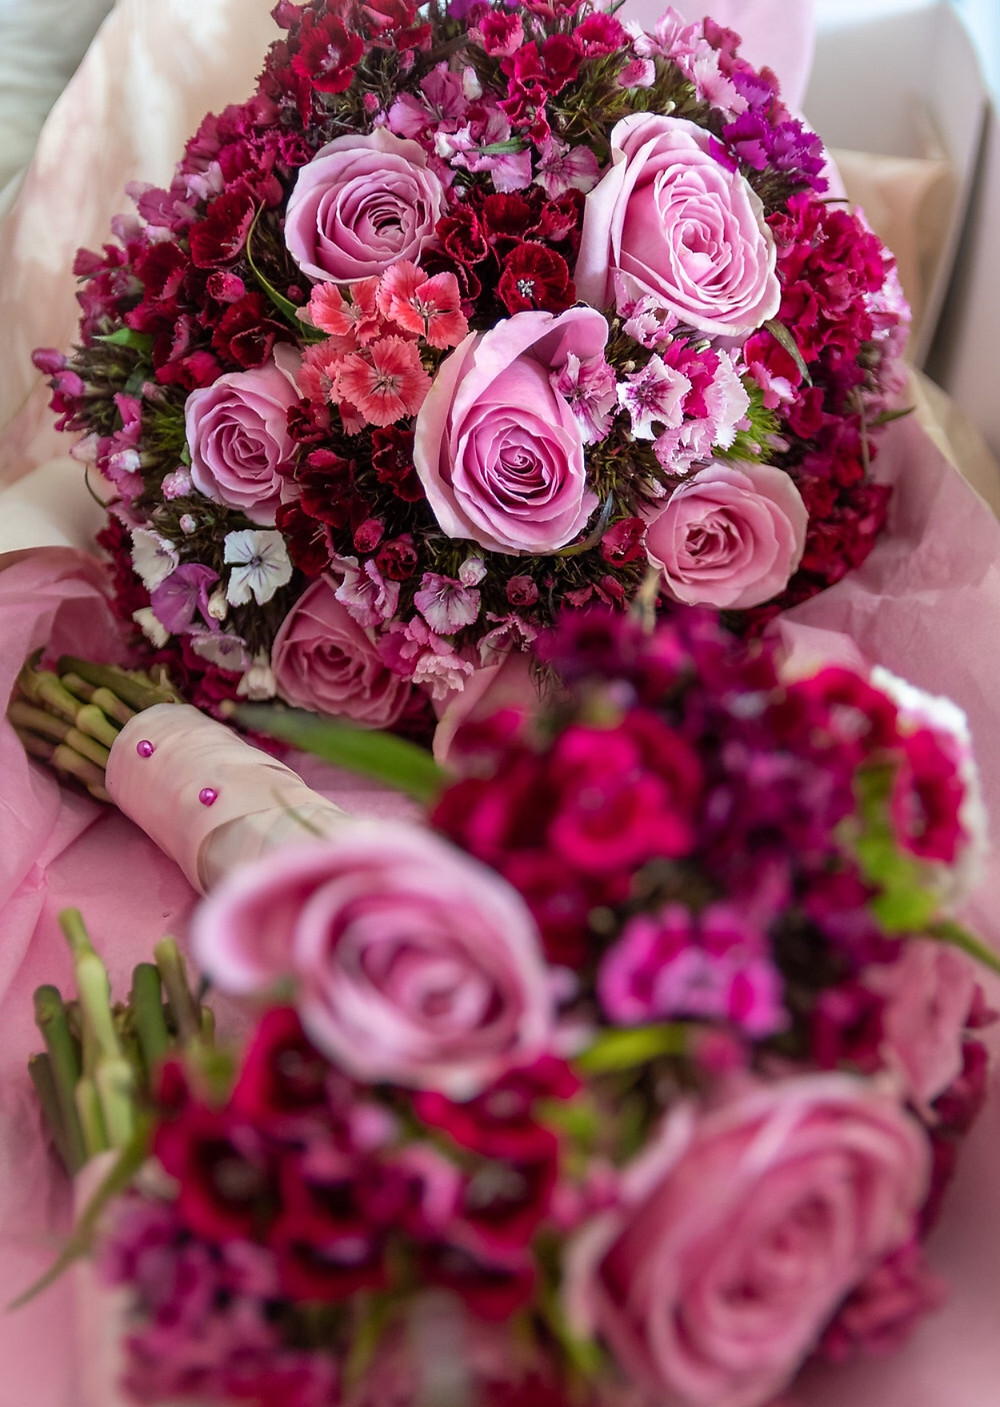 Bride's hand-tied bouquet with roses and sweet williams